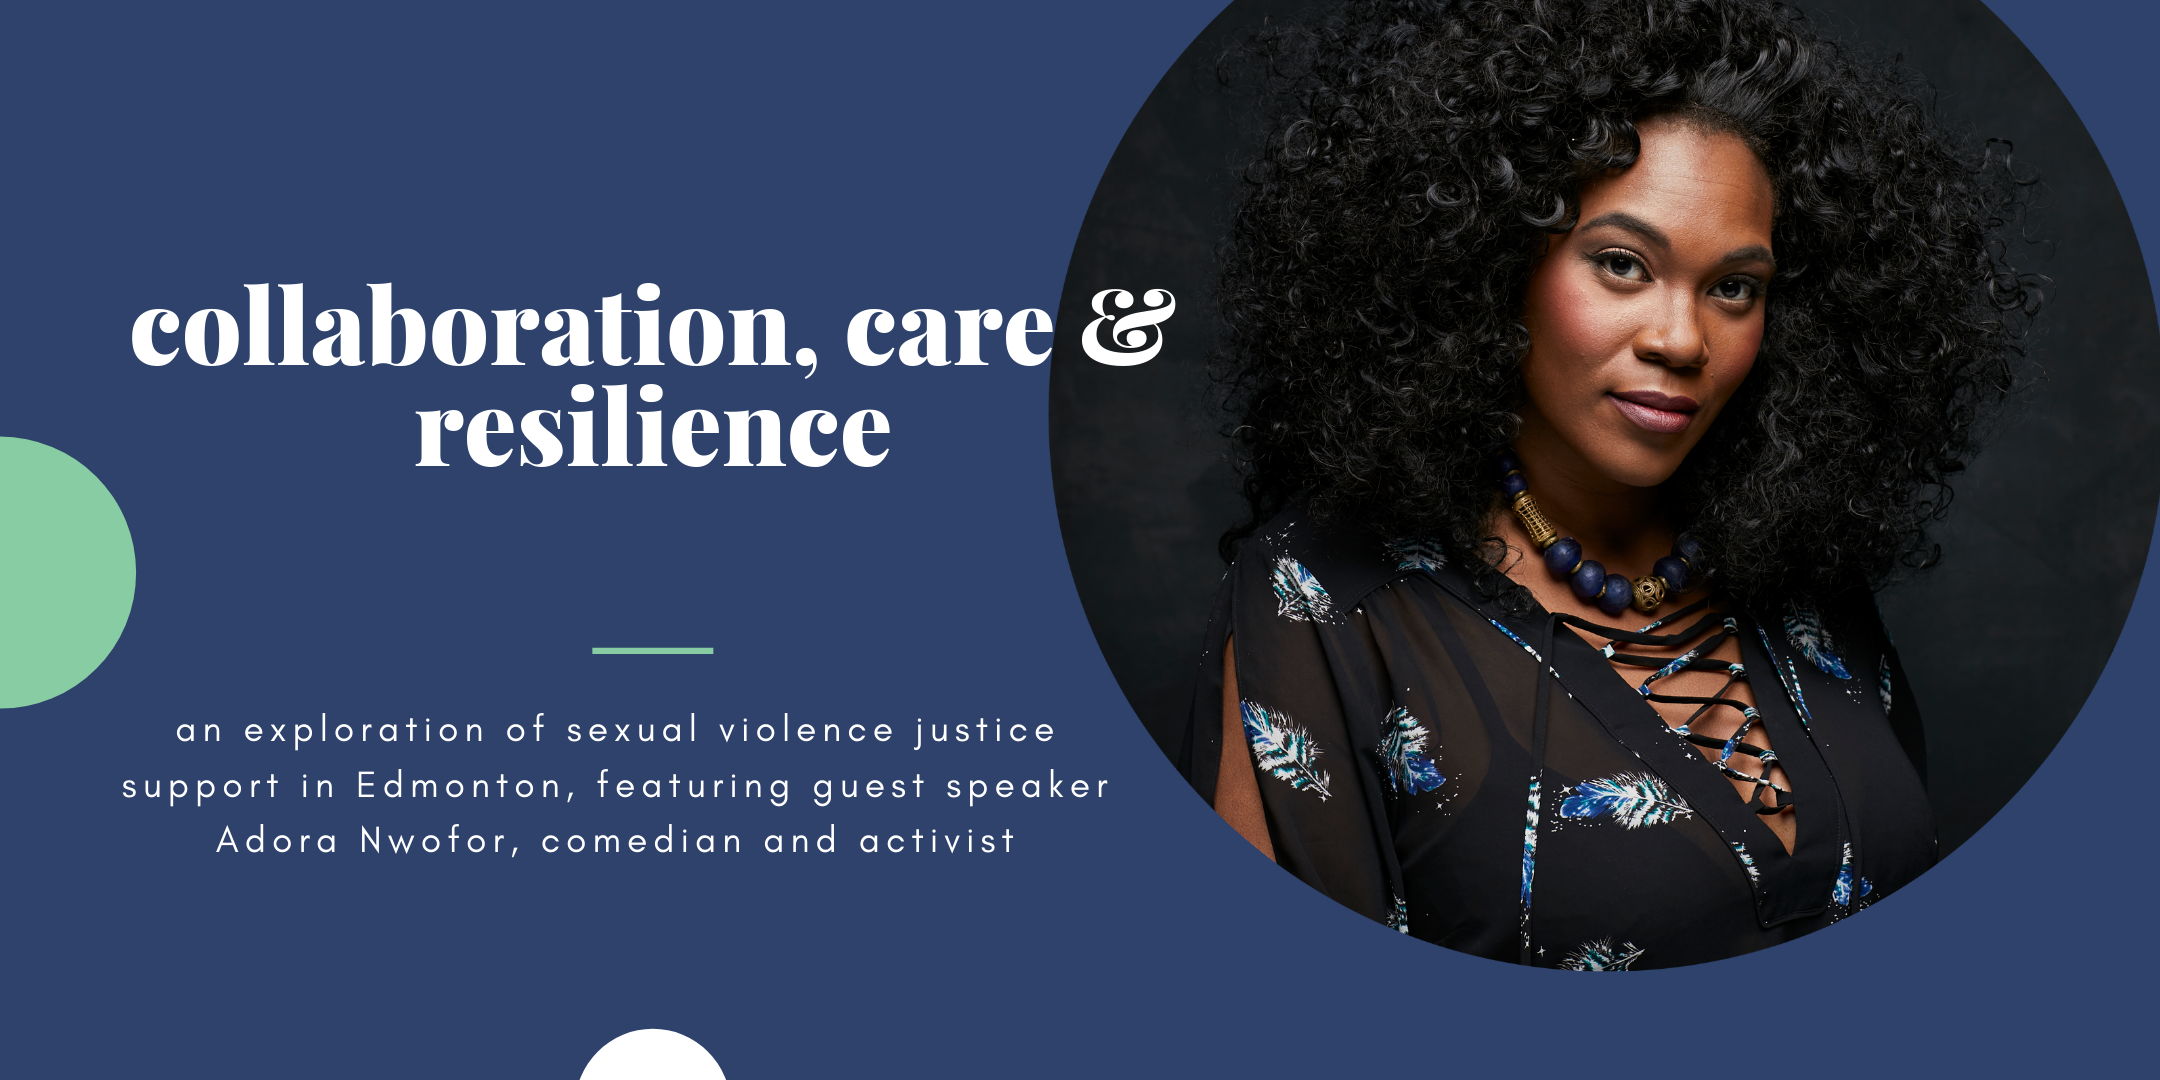 Collaboration, Care And Resilience Event Poster, Featuring Image Of Guest Speaker Adora Nwofor.